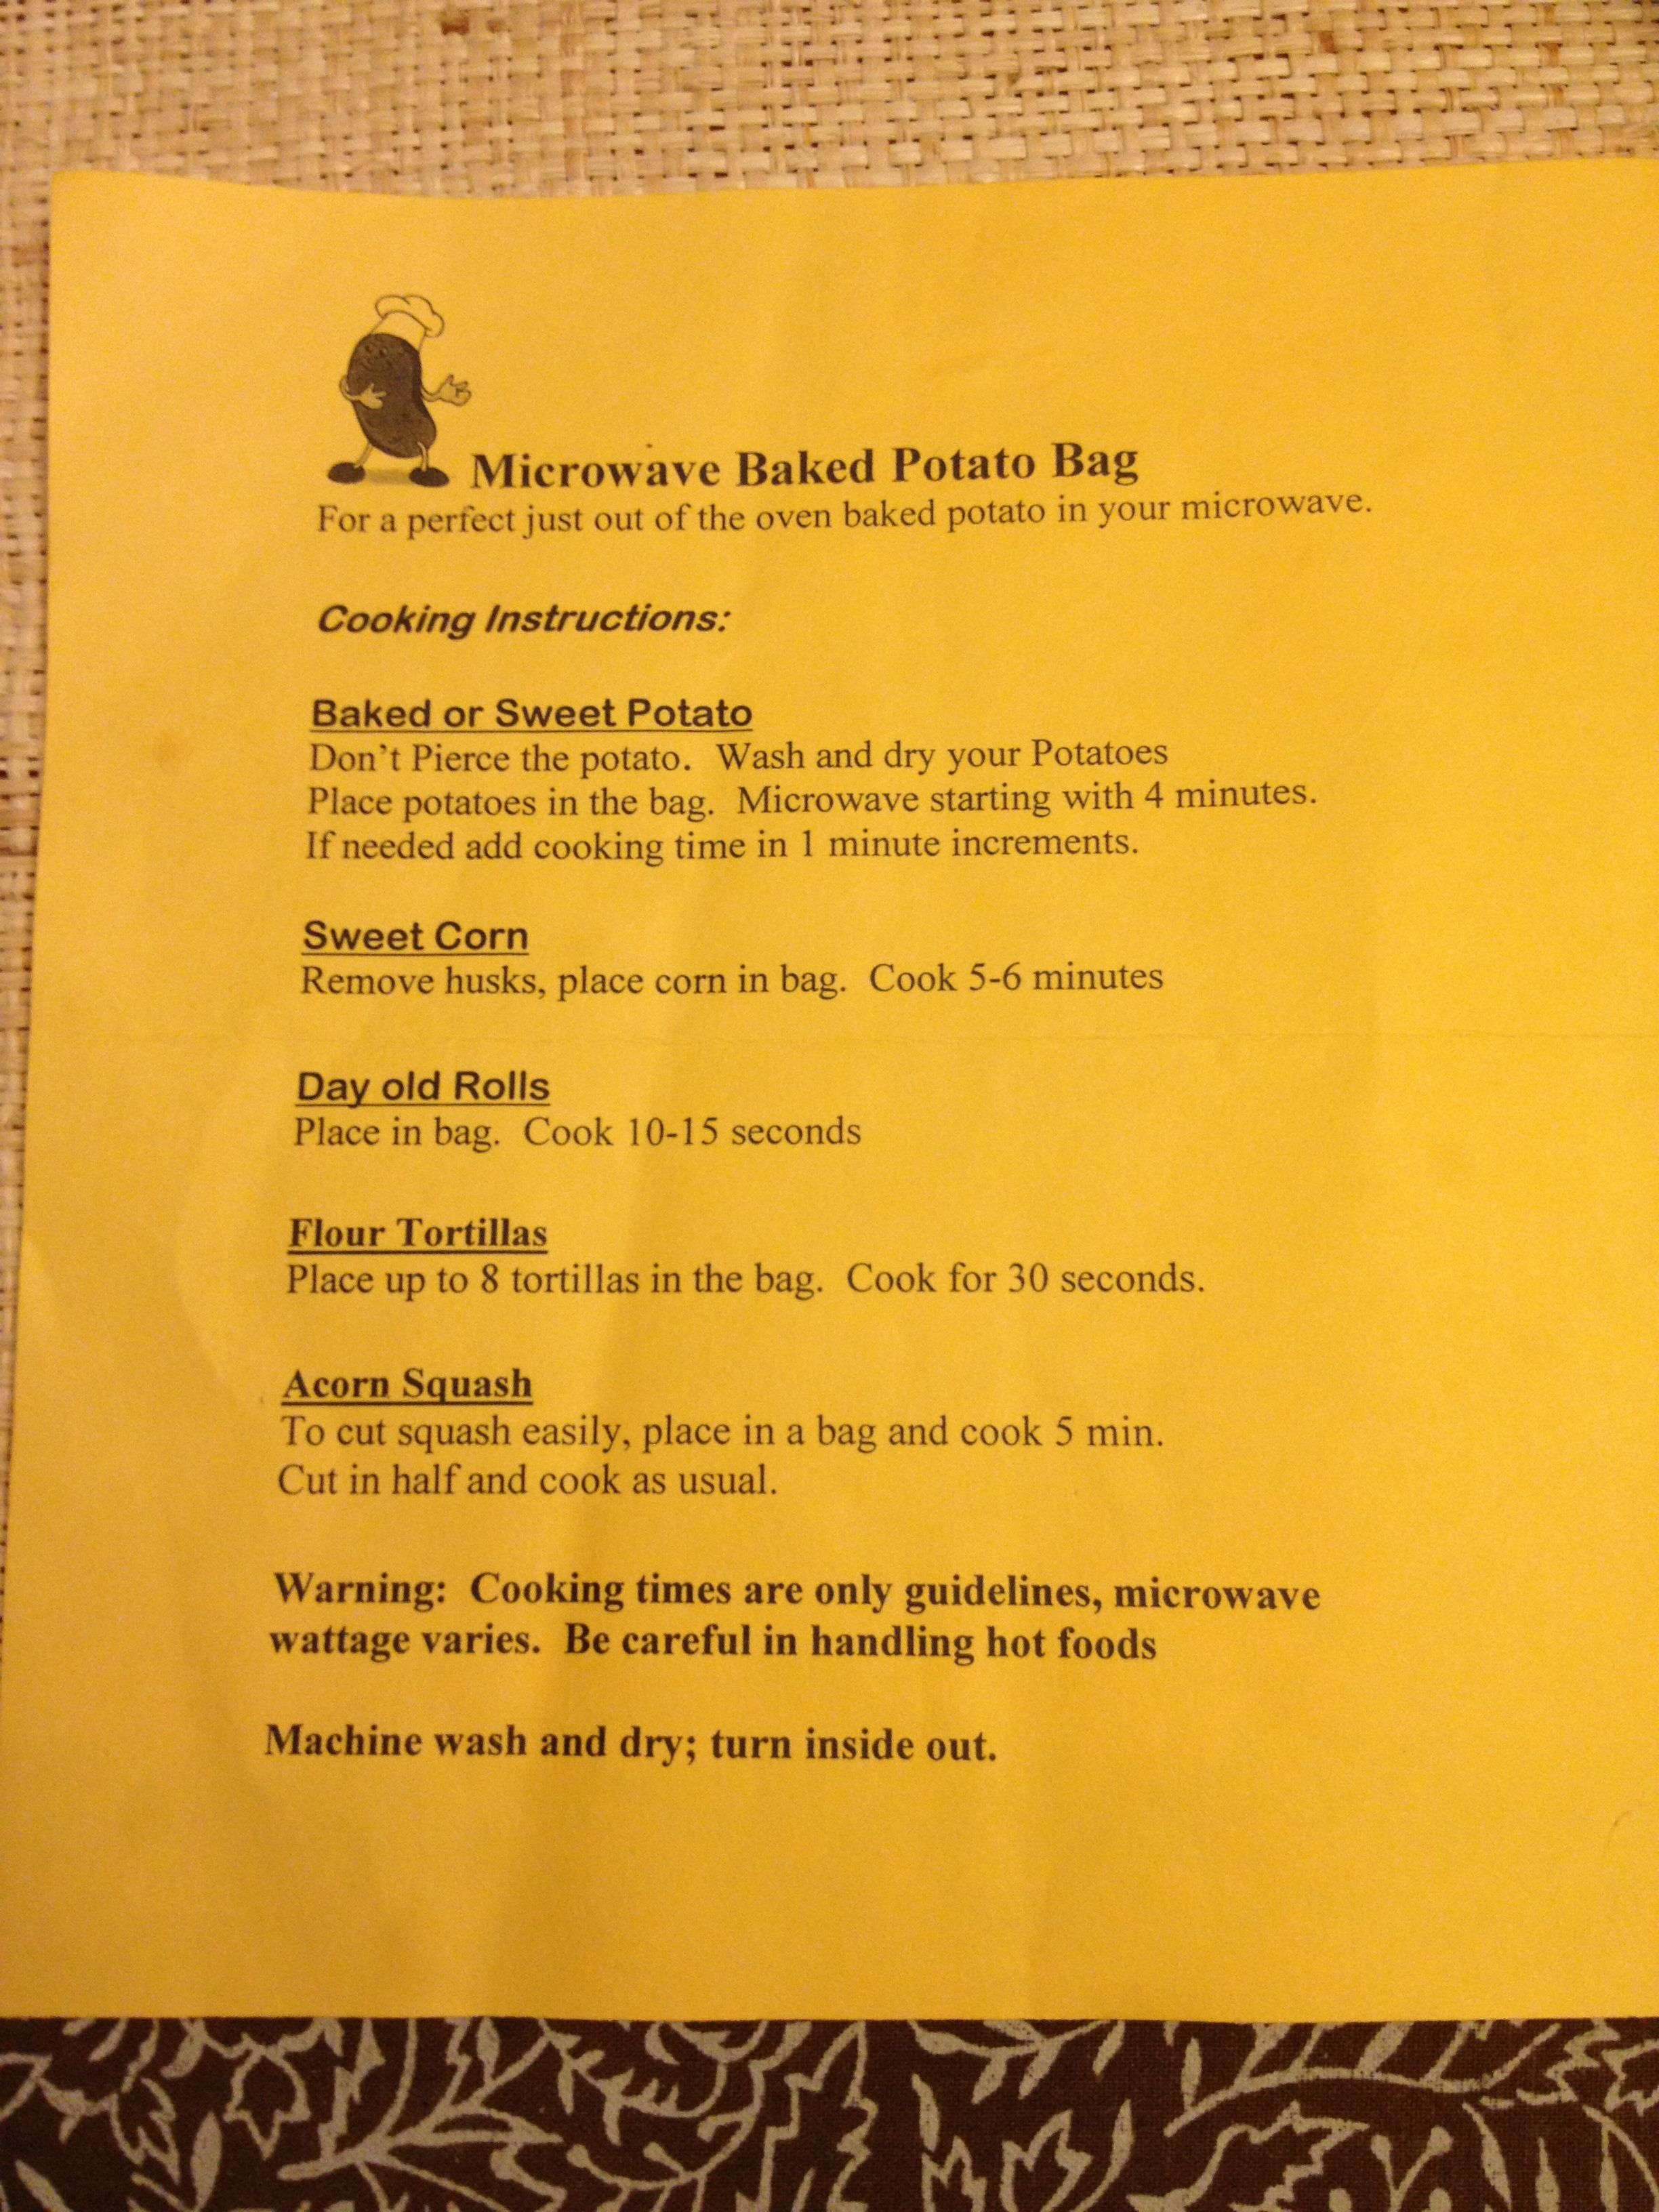 Microwave Baked Potato Bag Instructions